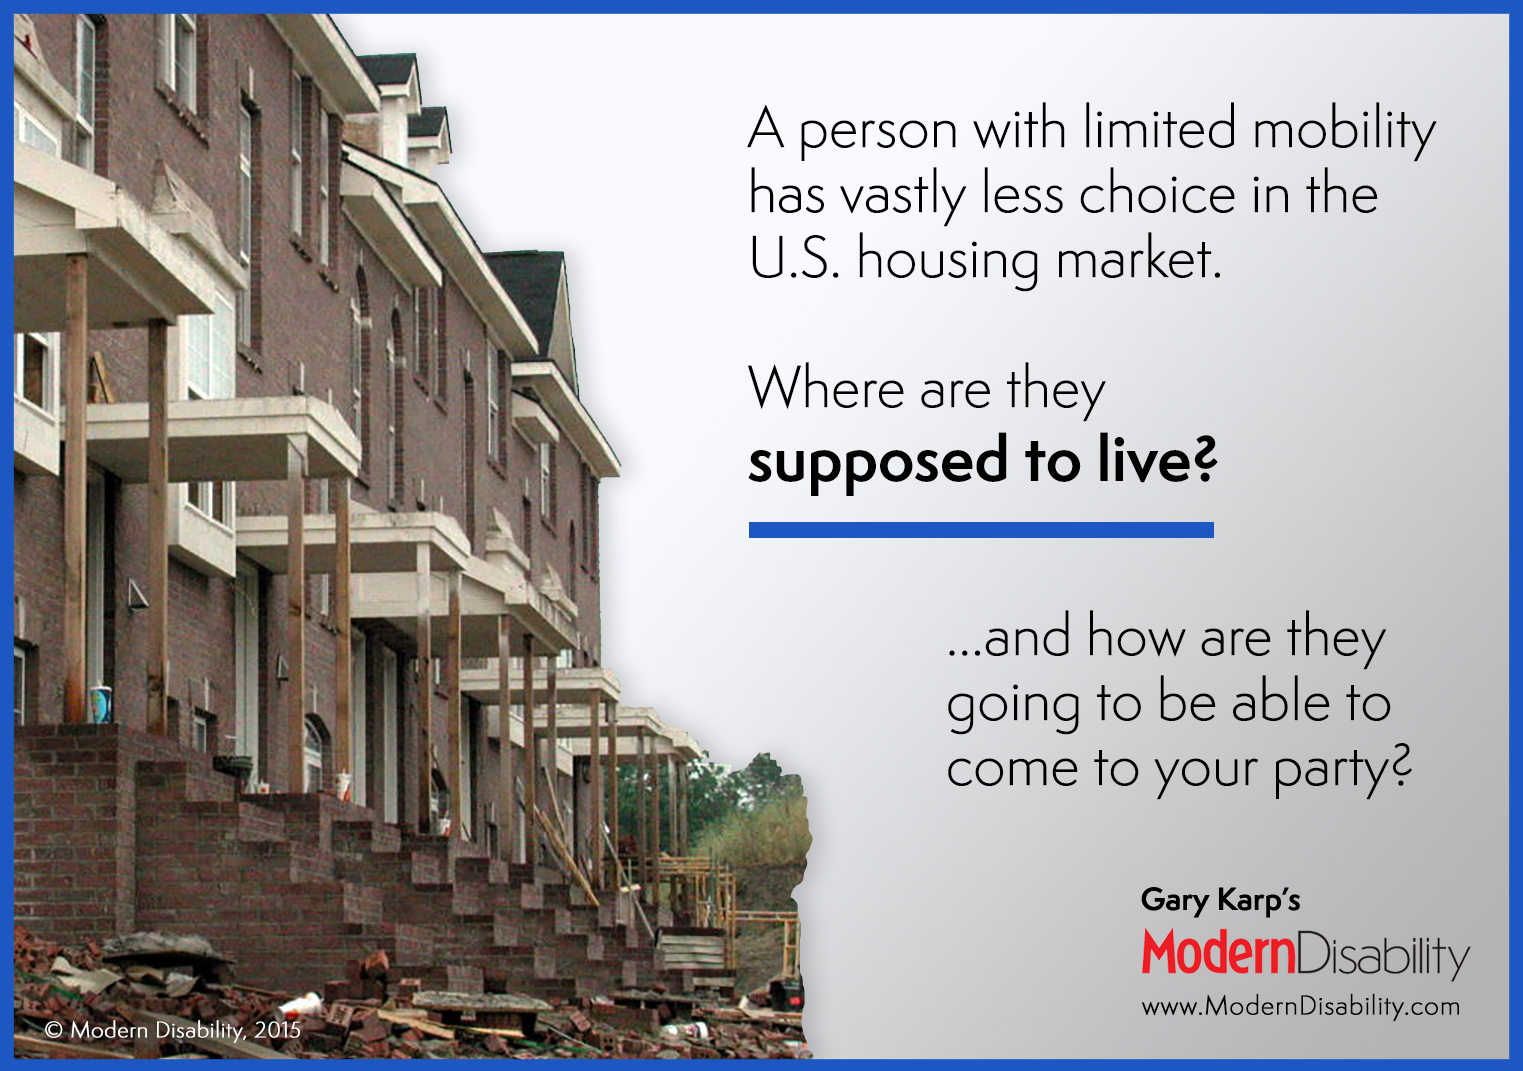 "Townhouses under construction with sets of steps in front of each, and the text ""A person with limited mobility has vastly less choice in the U.S. housing market. Where are they supposed to live? ...and how are they going to be able to come to your party?"""